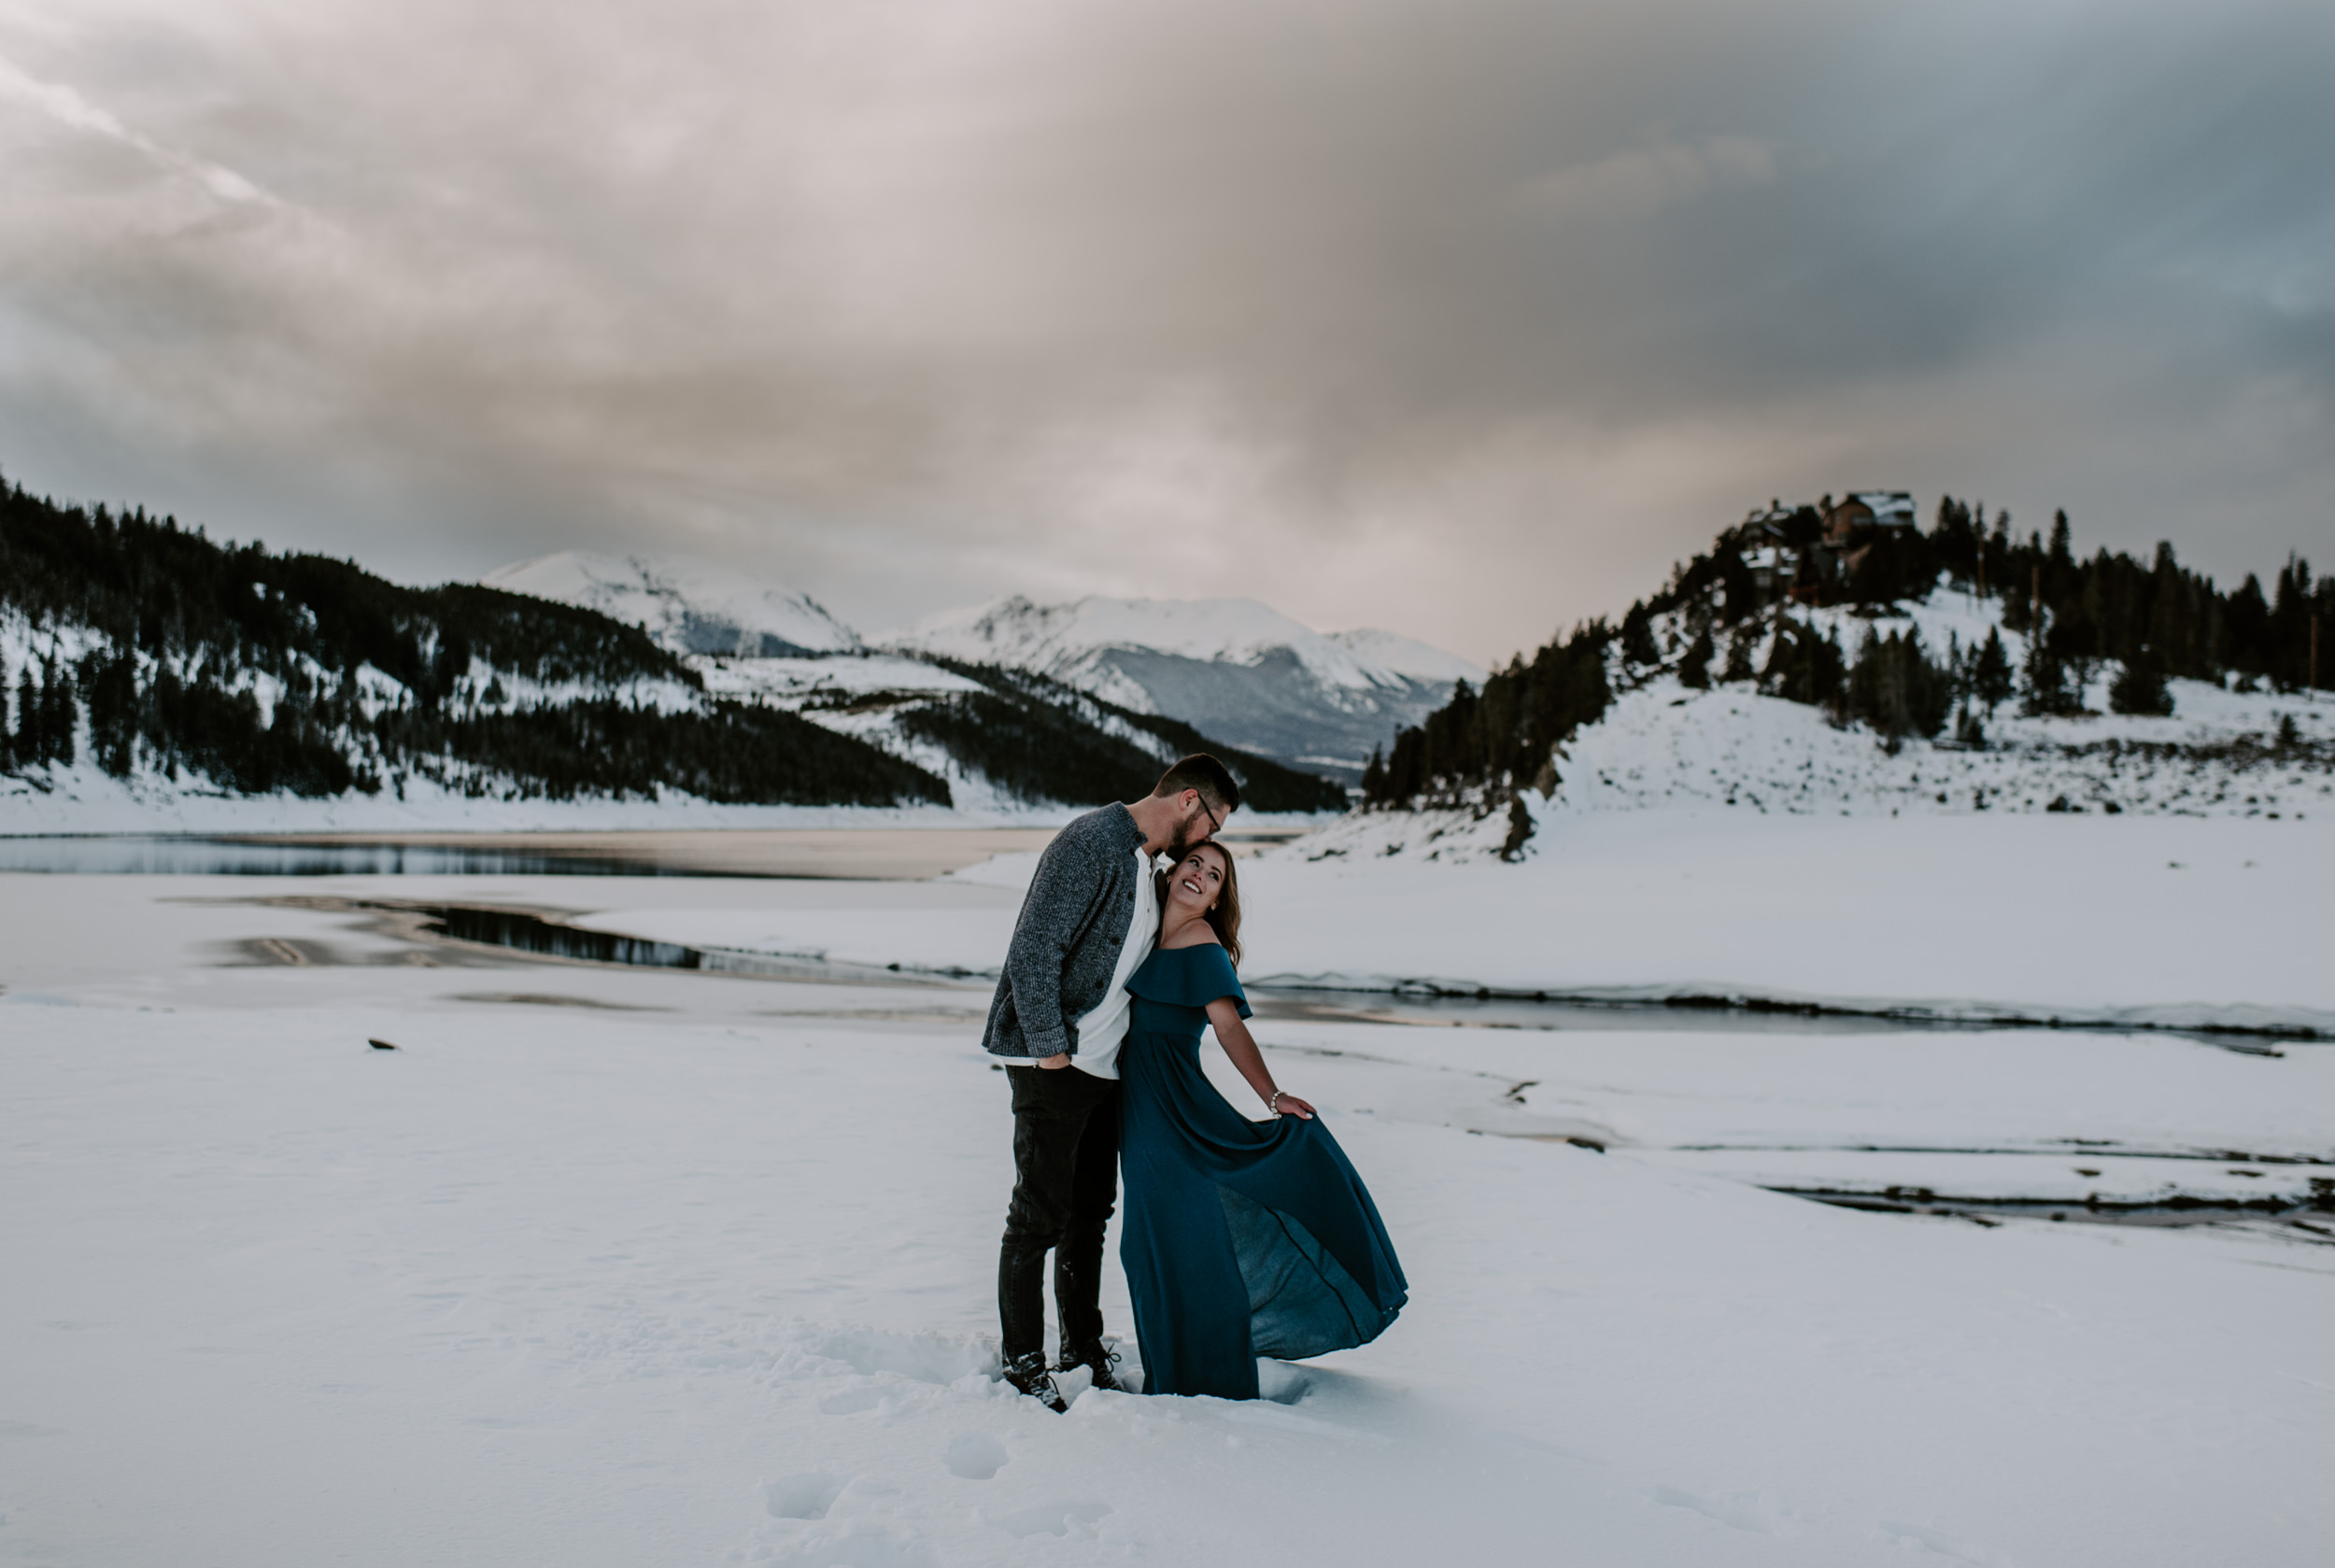 Winter engagement session photos in Breckenridge, Colorado. Lake Dillon sunset engagement photography.